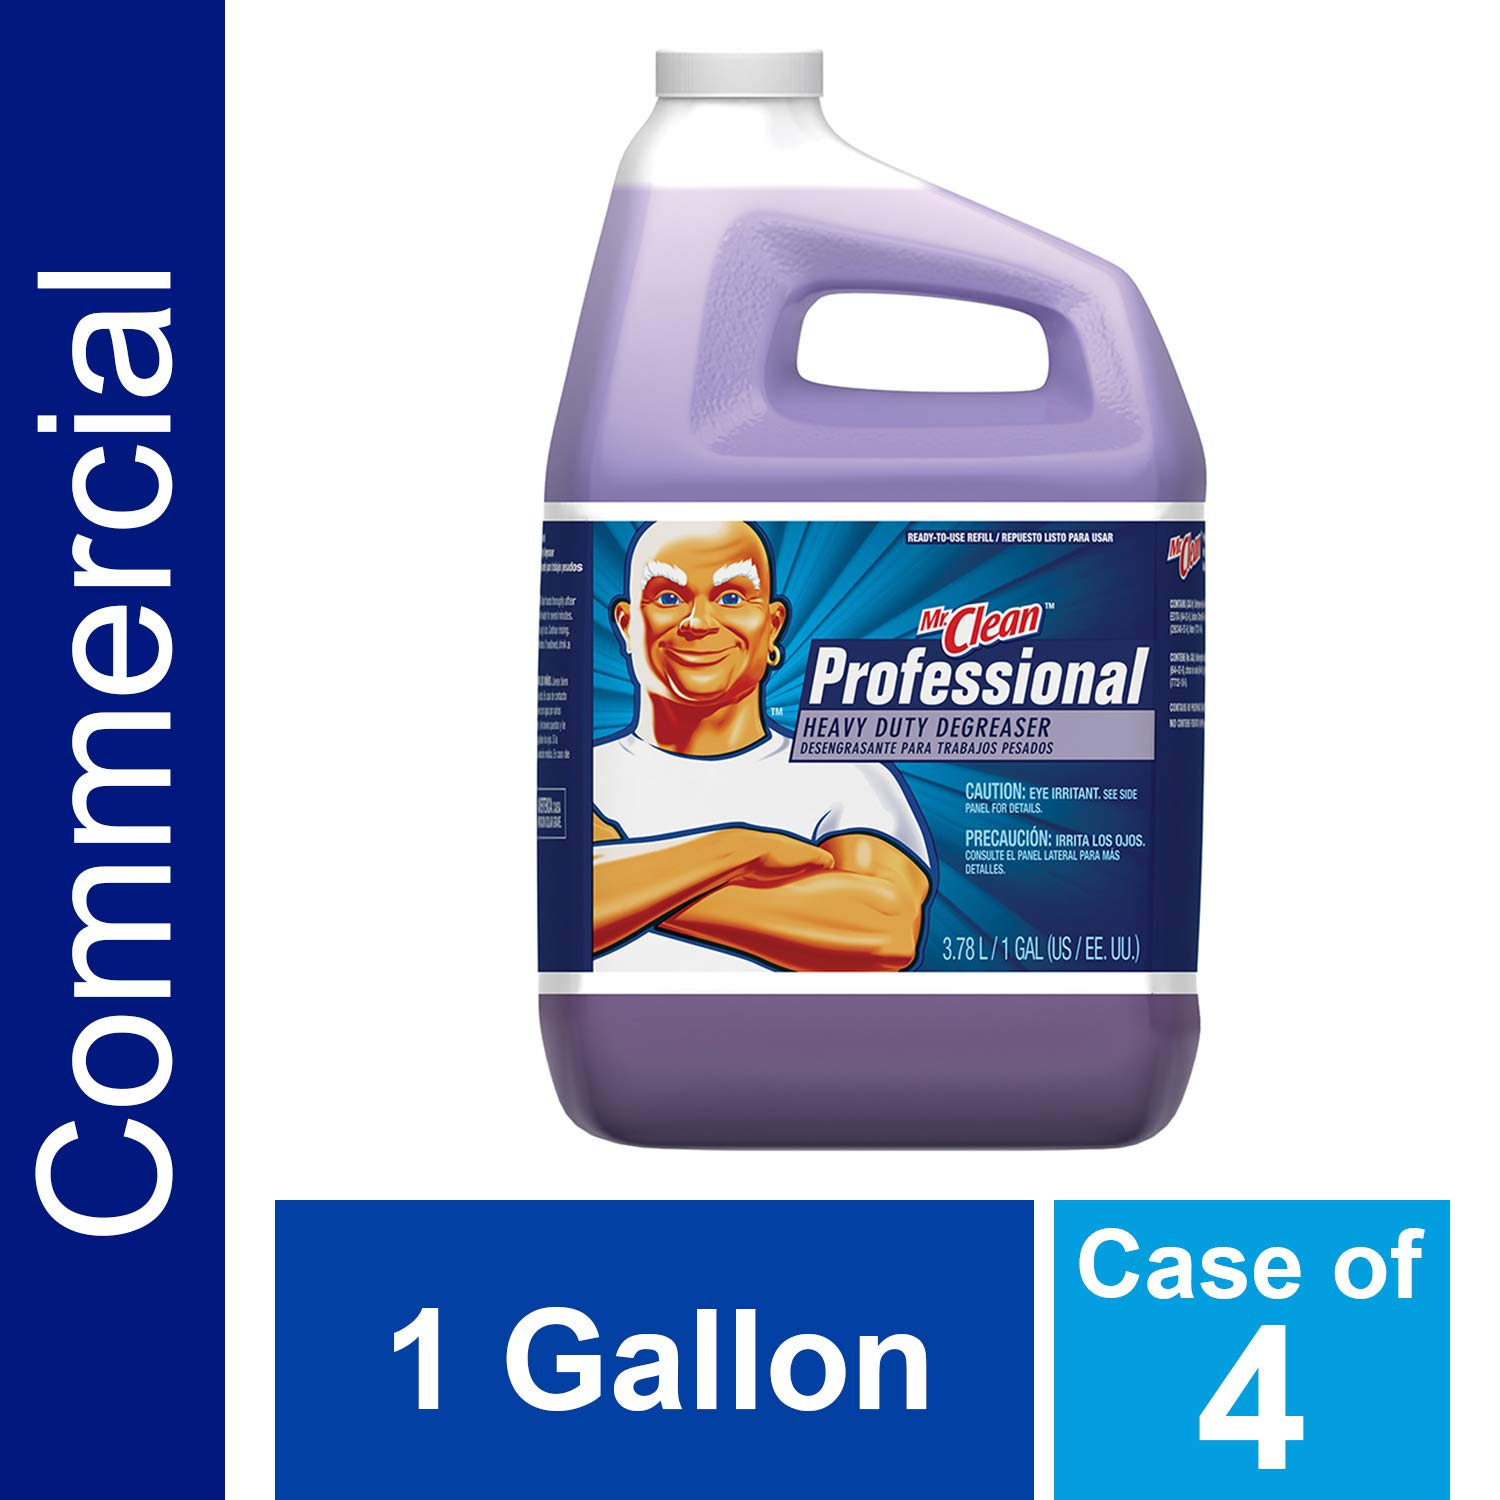 Heavy Duty Degreaser from Mr. Clean for Commercial Kitchen, Machine and  Auto Shop Uses, 1 Gal. (Case of 4)